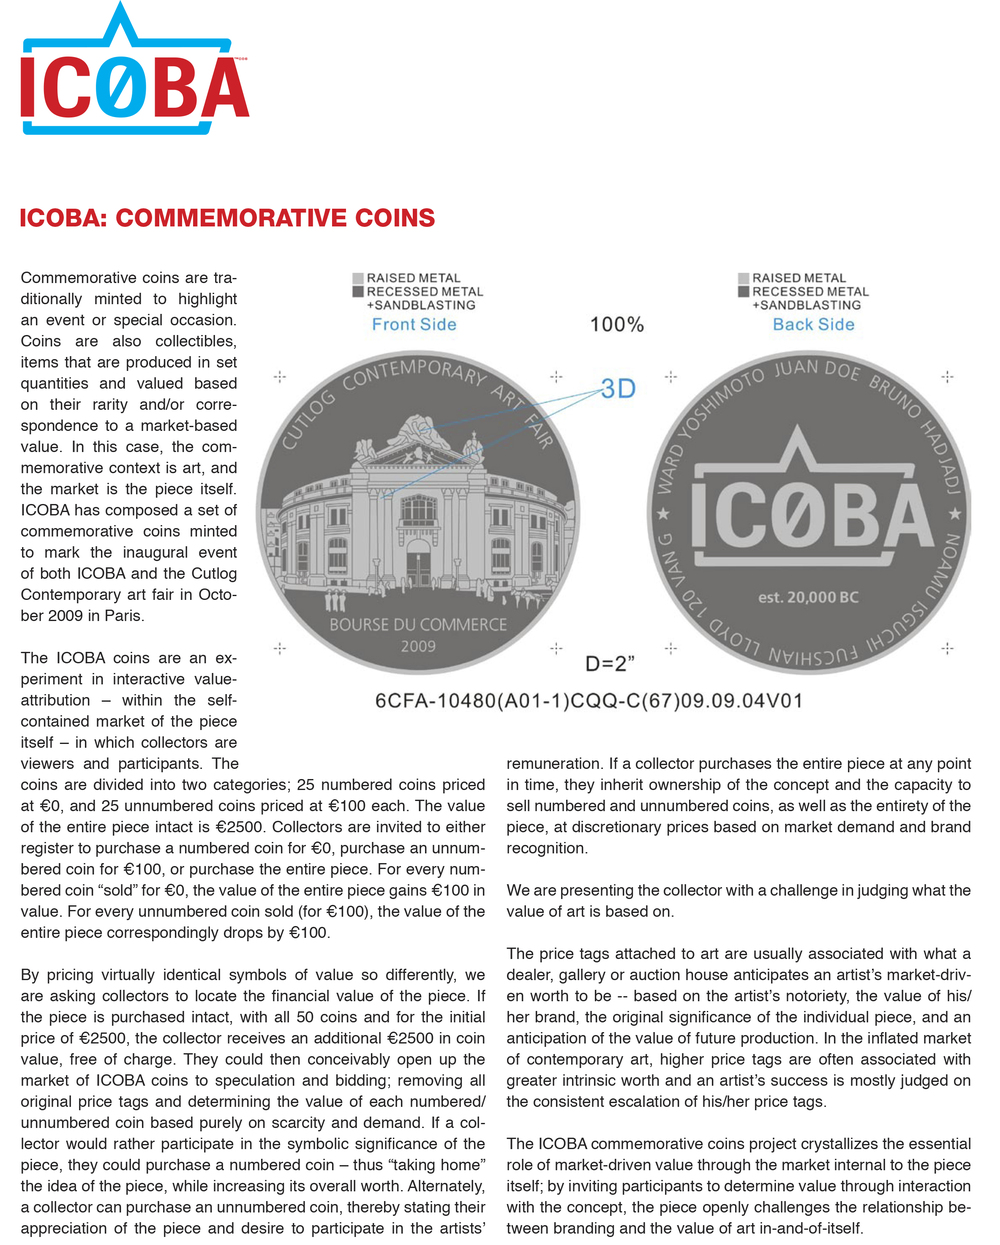 ICOBA_Press-Kit 6.jpg